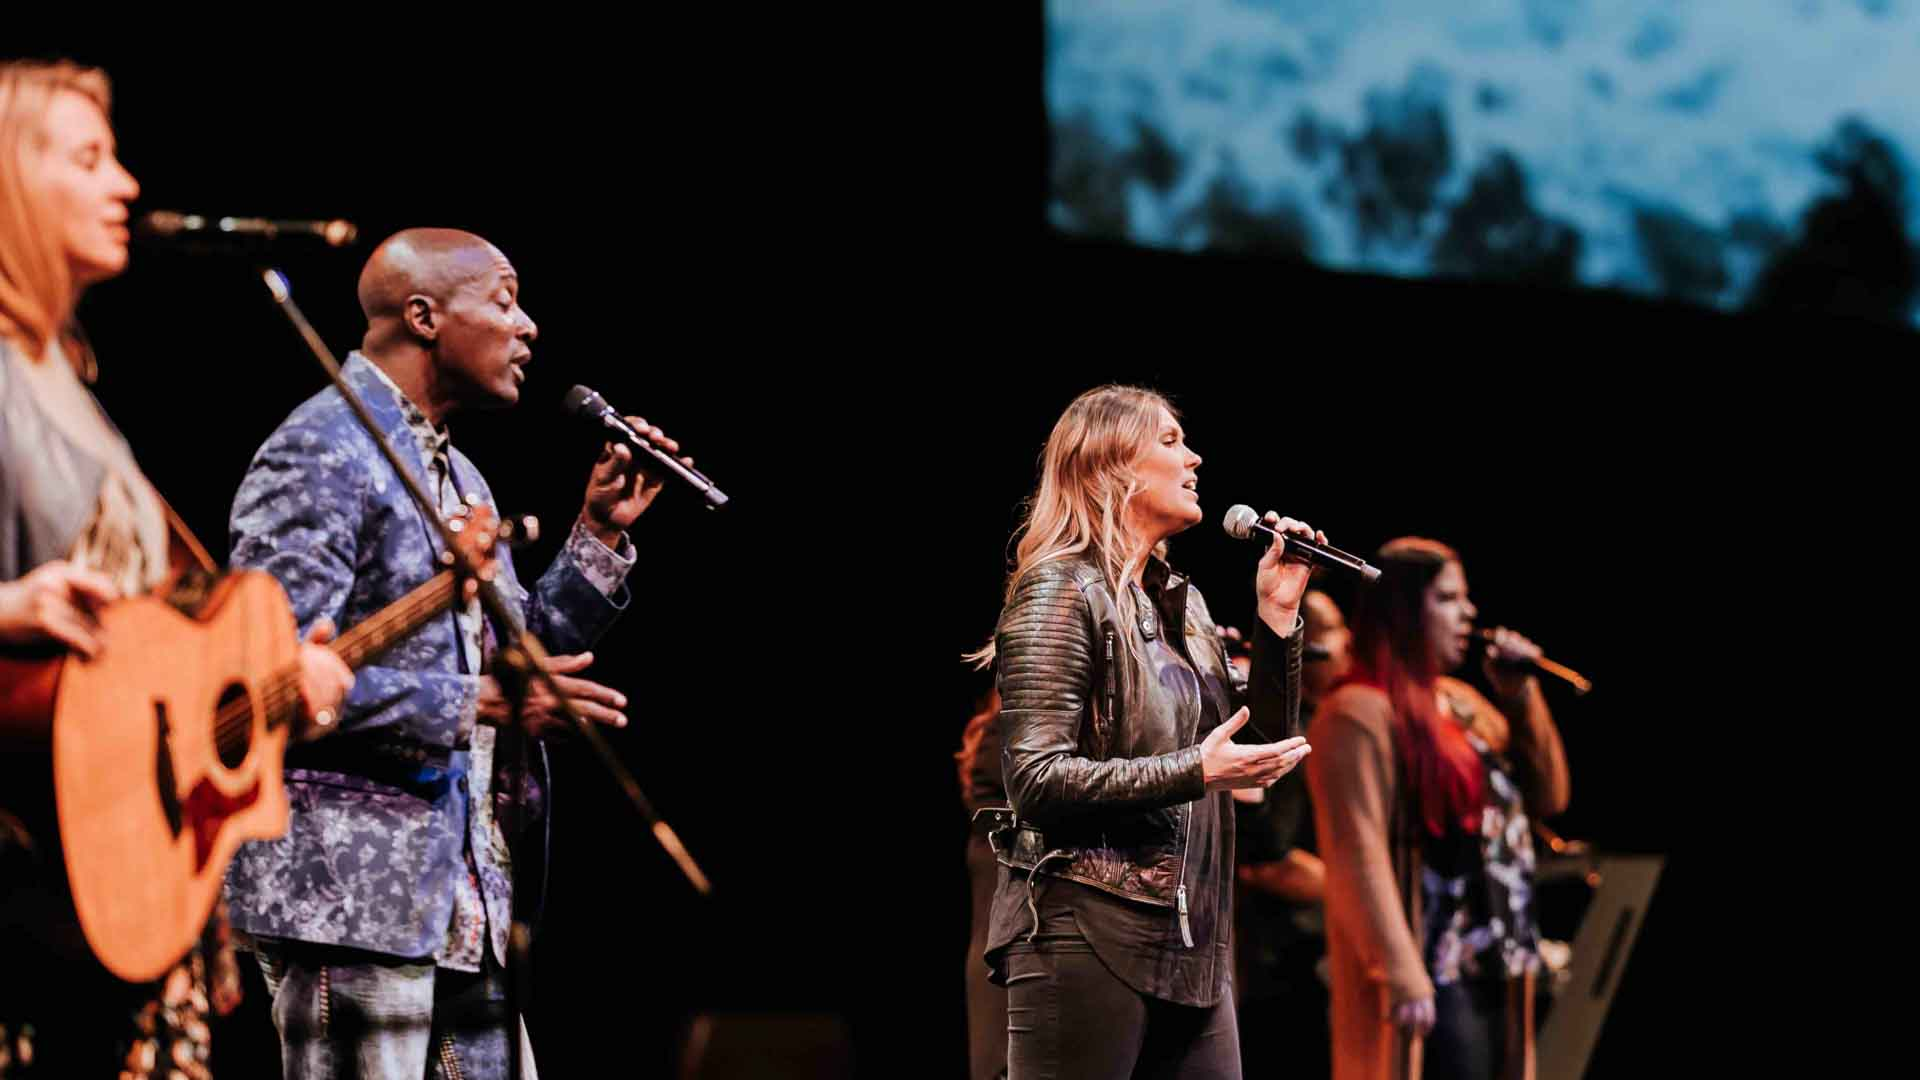 Mt Zion Ministries - People Singing